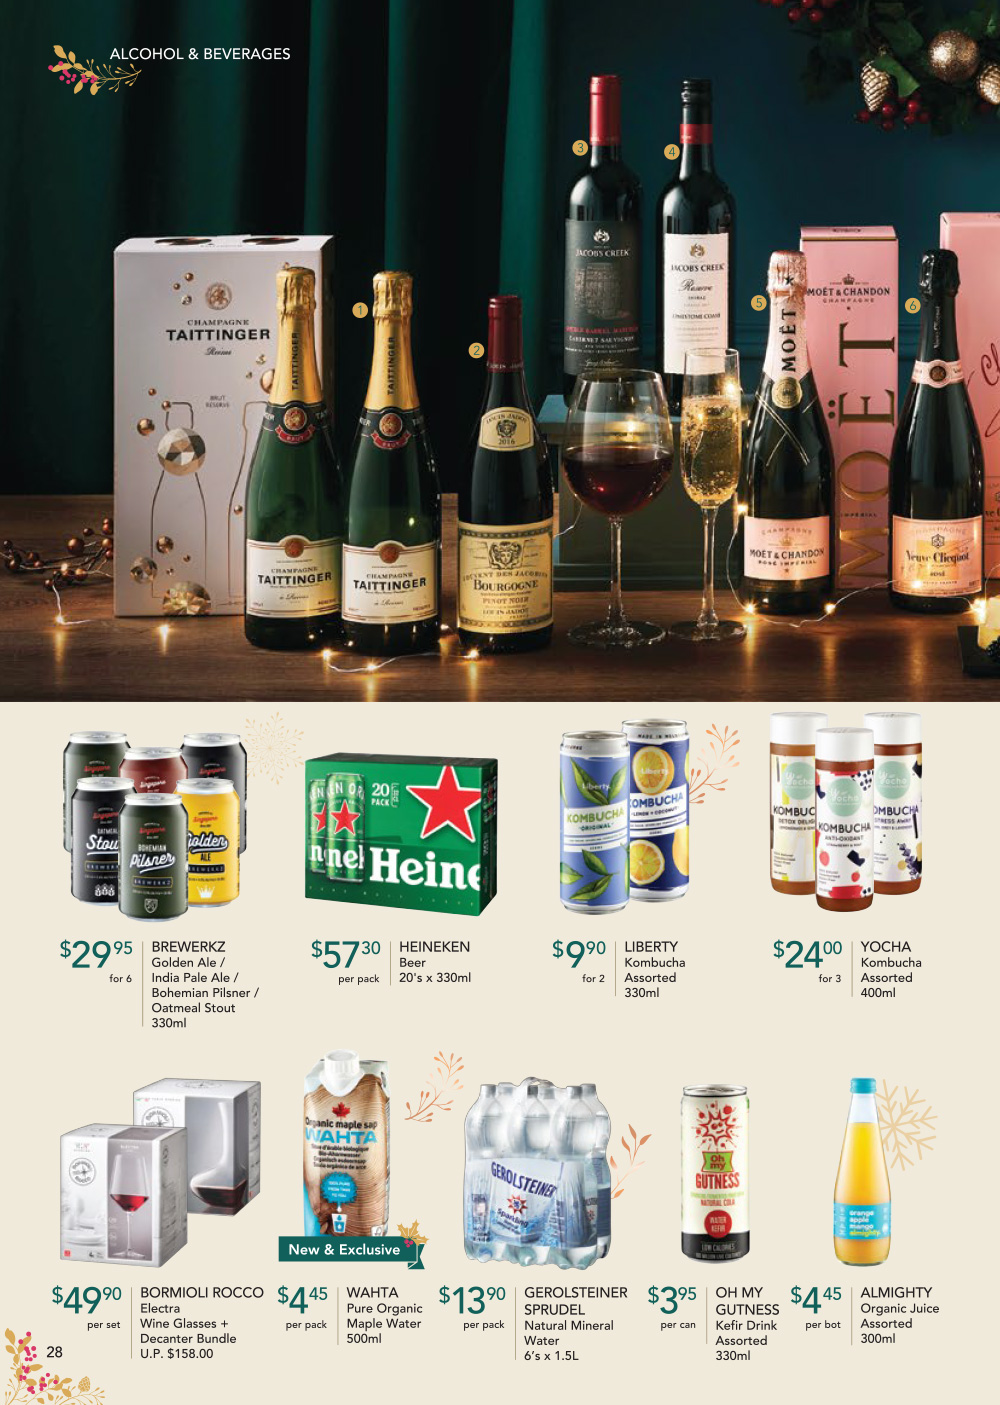 FairPrice Finest Christmas Catalogue 2019 - Alcohol and Beverages